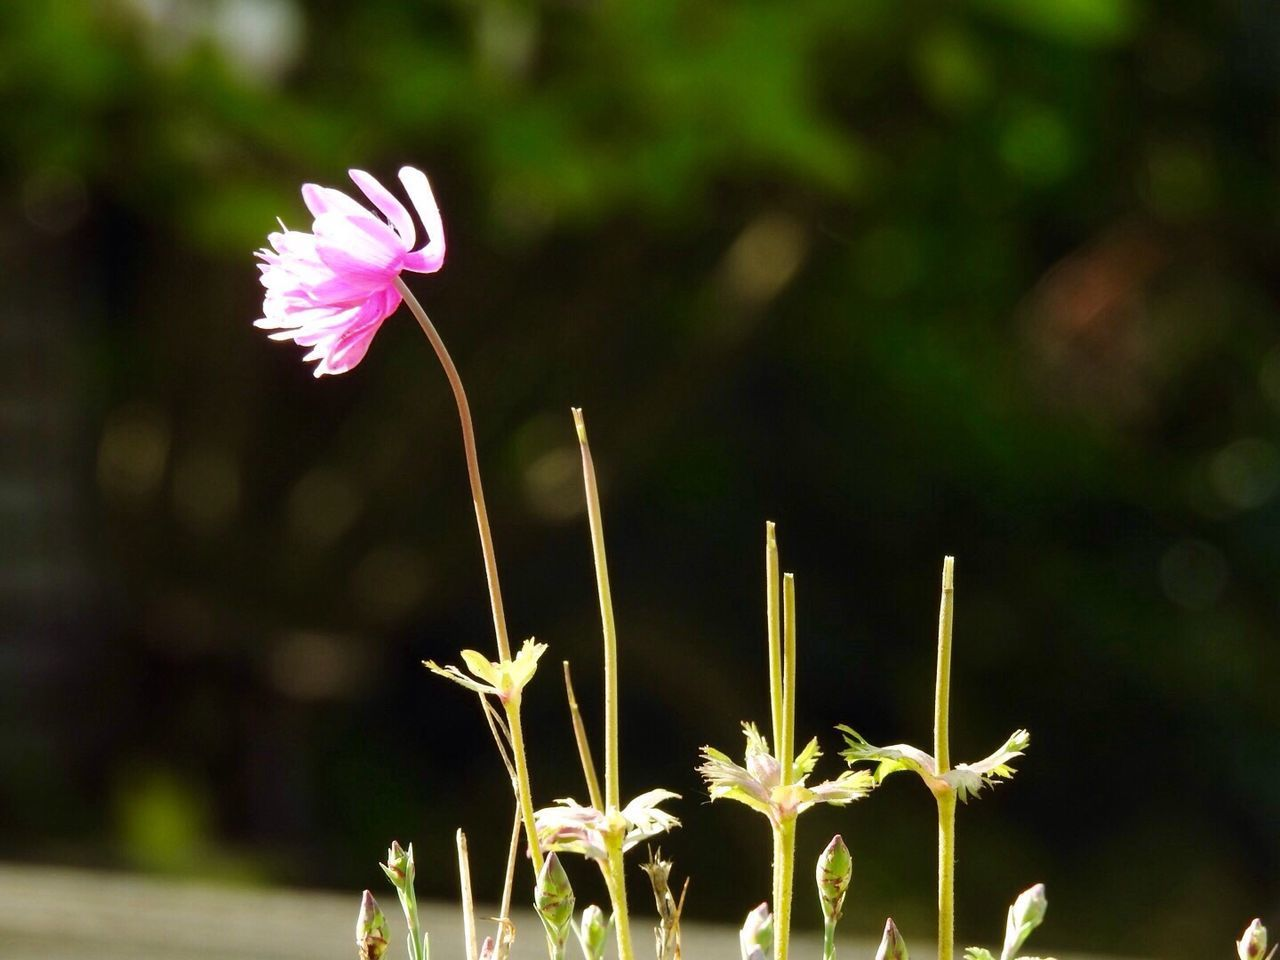 Flower Head Flower Fragility Plant Nature Petal Outdoors Growth Focus On Foreground Freshness Beauty In Nature Close-up Day No People Blooming Pink Color Breeze